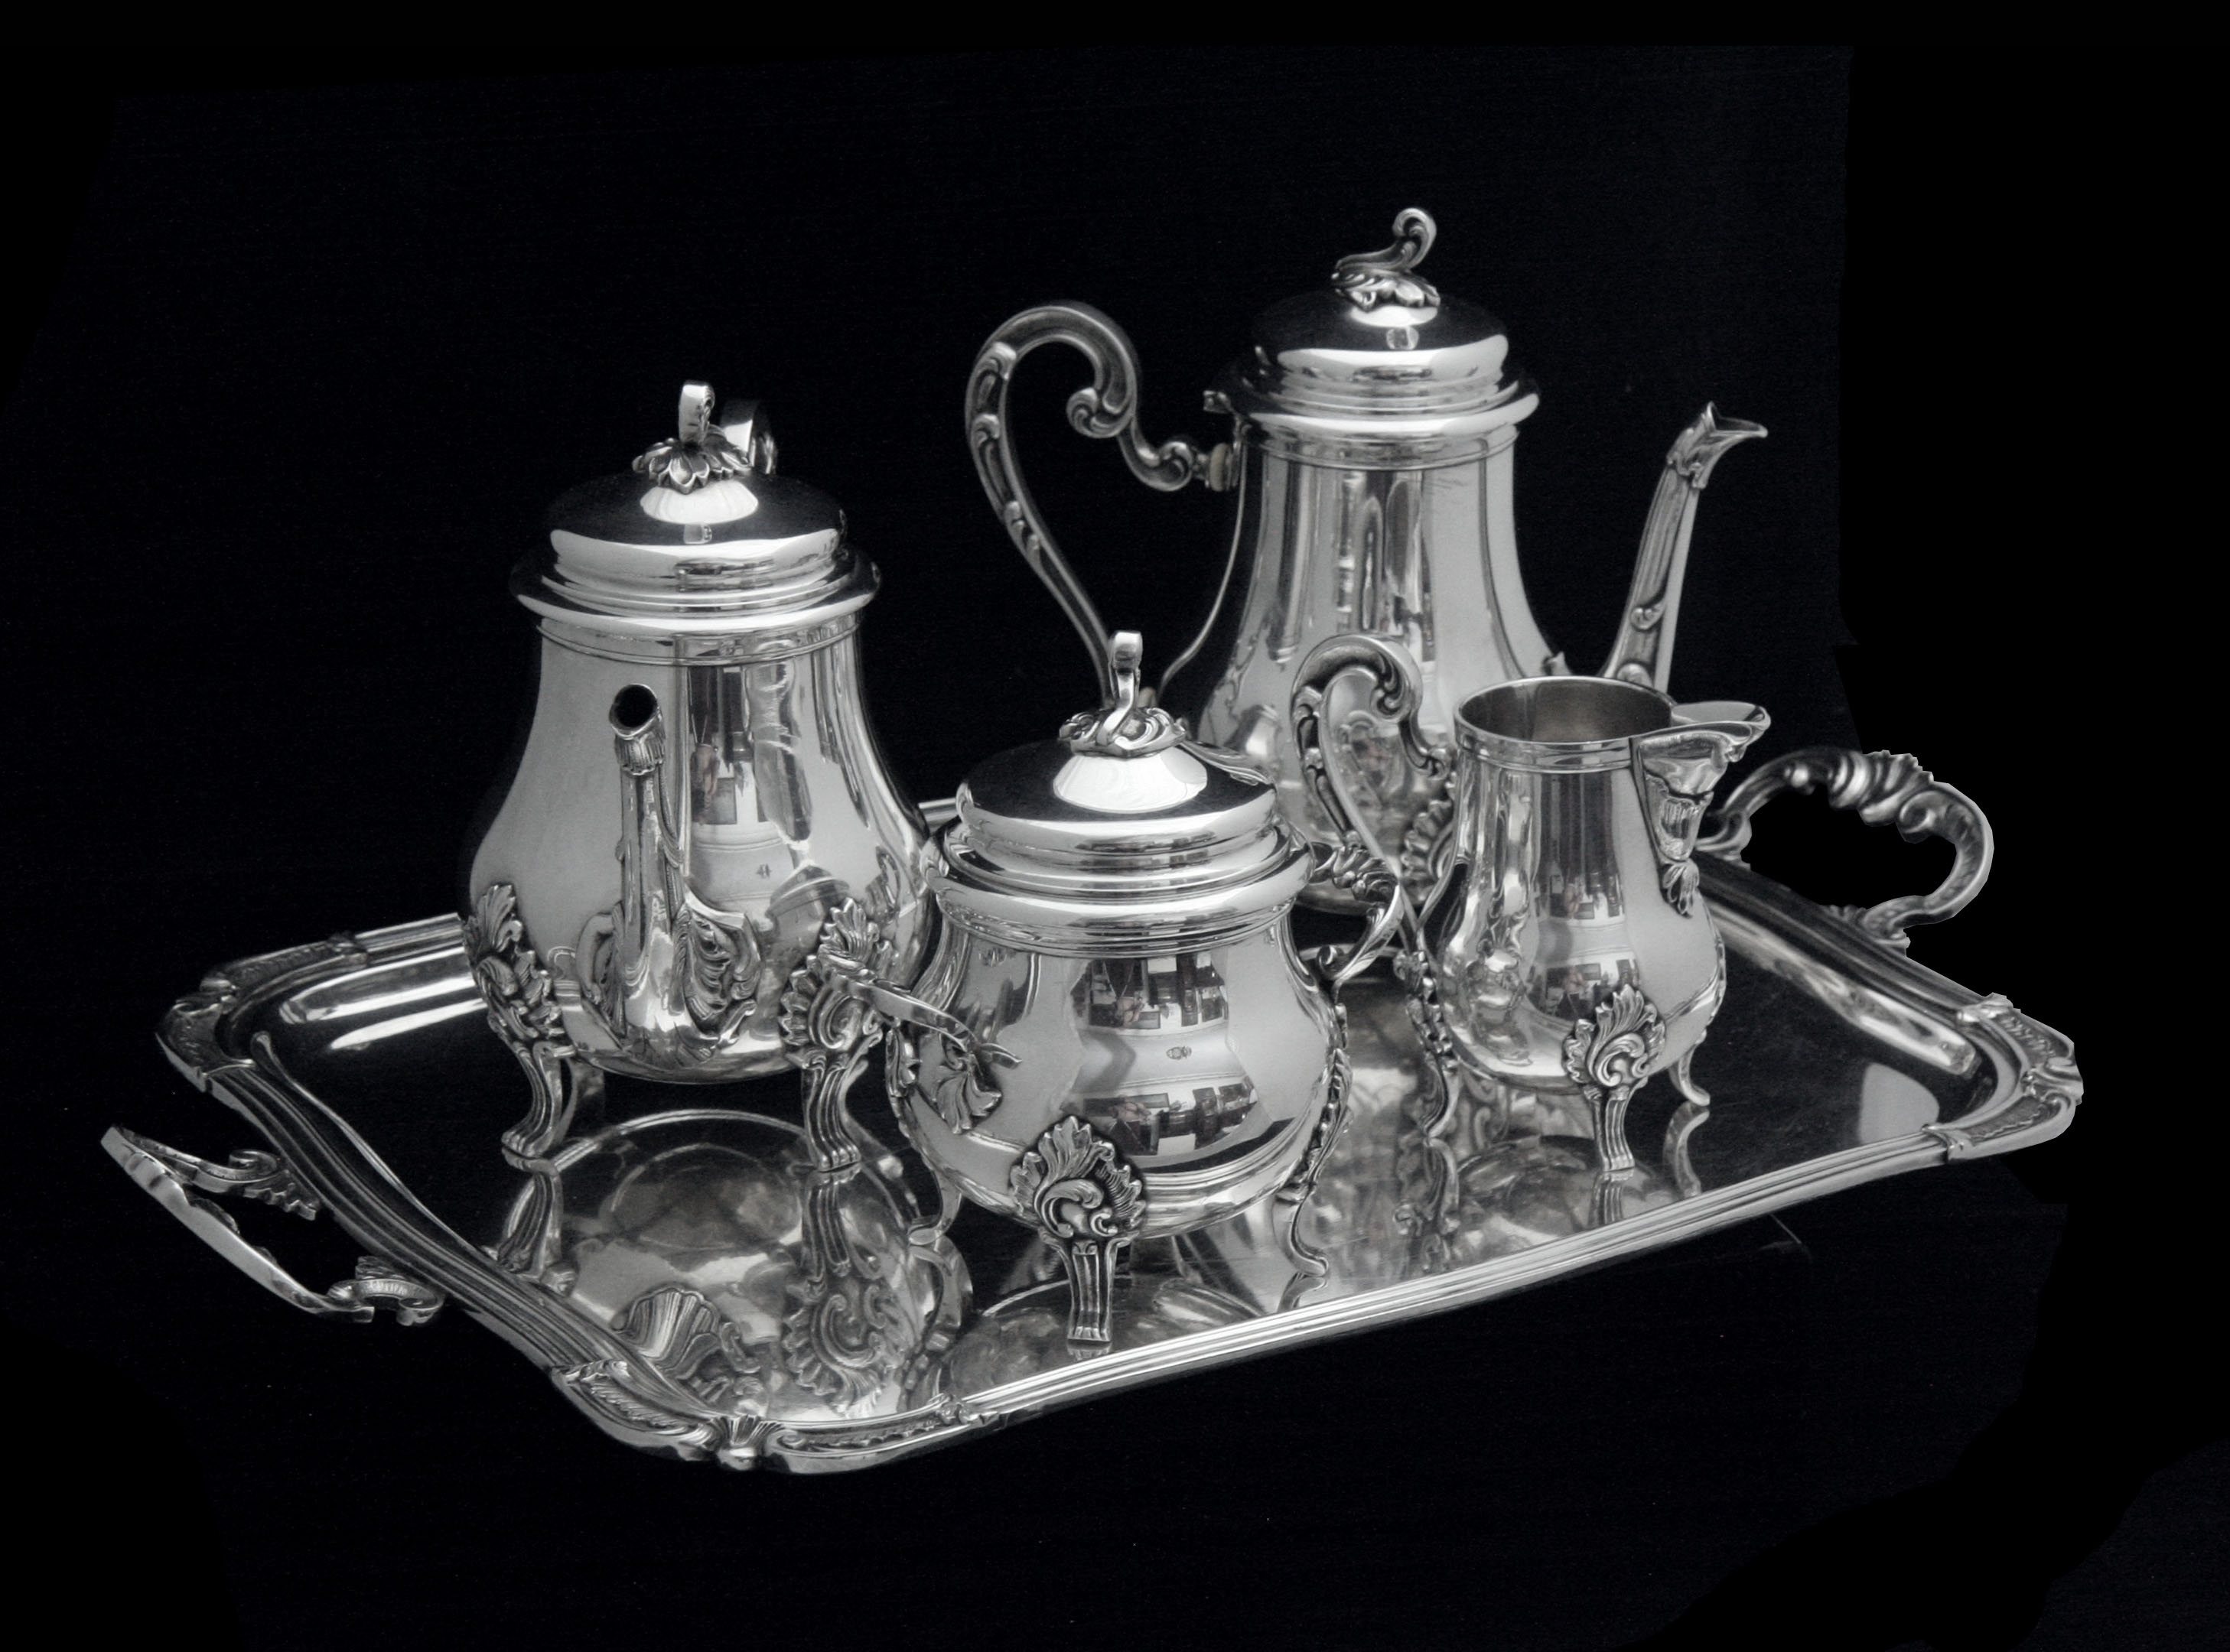 FRENCH ANTIQUE 19th CENTURY 5 pc. SILVER PLATED TEA SET WITH SERVING TRAY !! & Estate Sale Sterling Silver - Categories